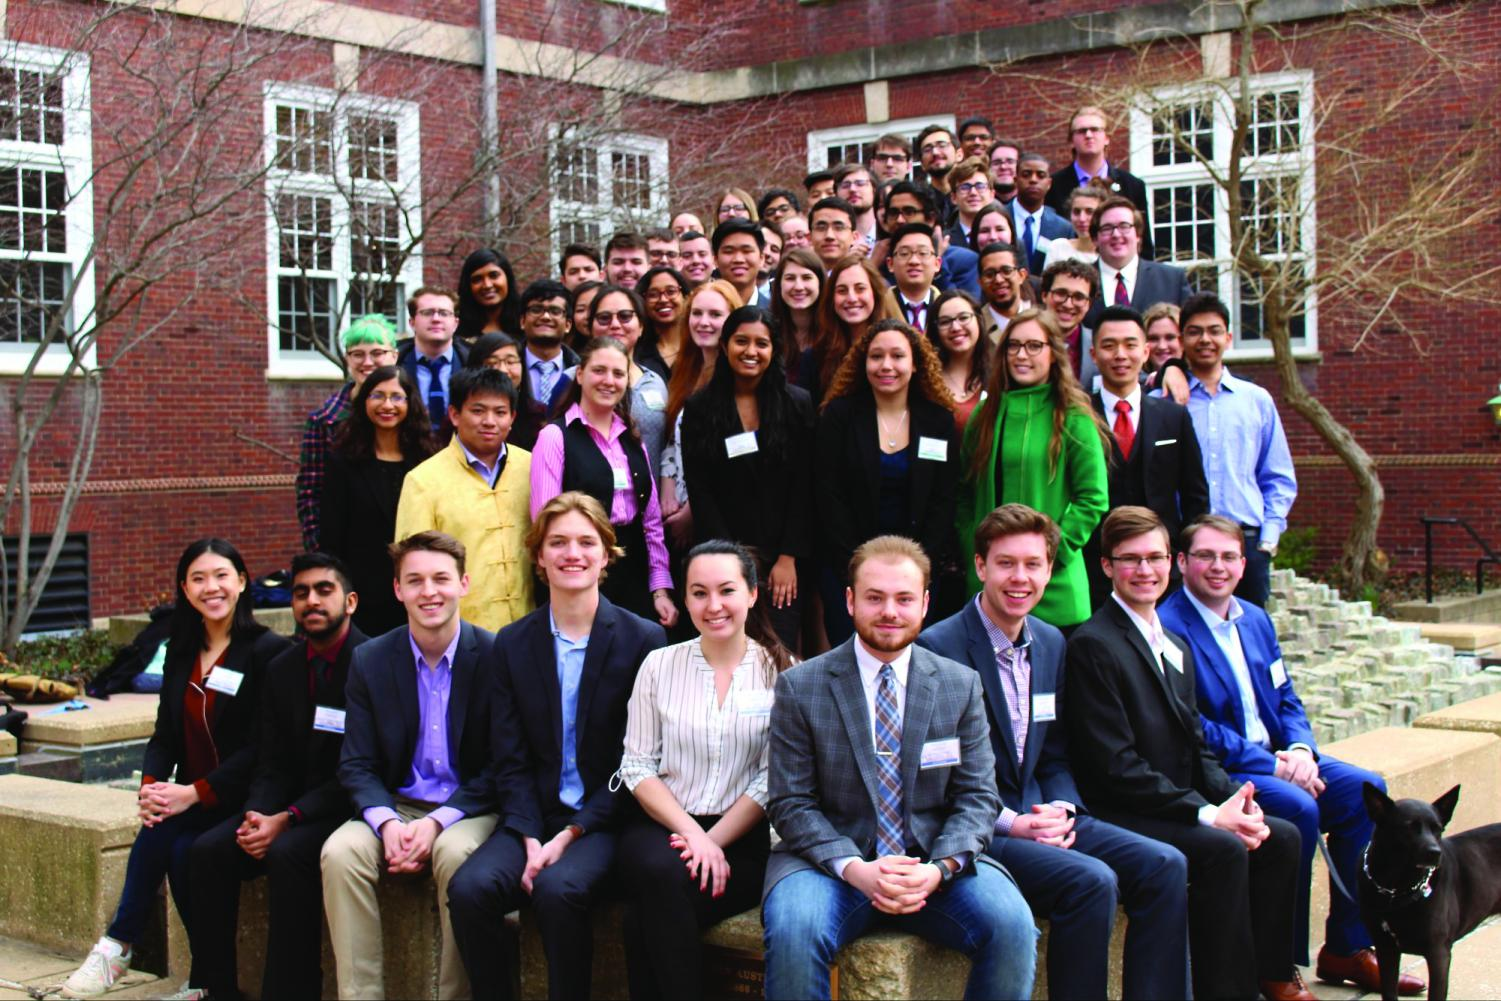 The University Model United Nations team poses for a picture in March 2017. Students involved are tasked with complexities of the political world while attaining real-world benefits.